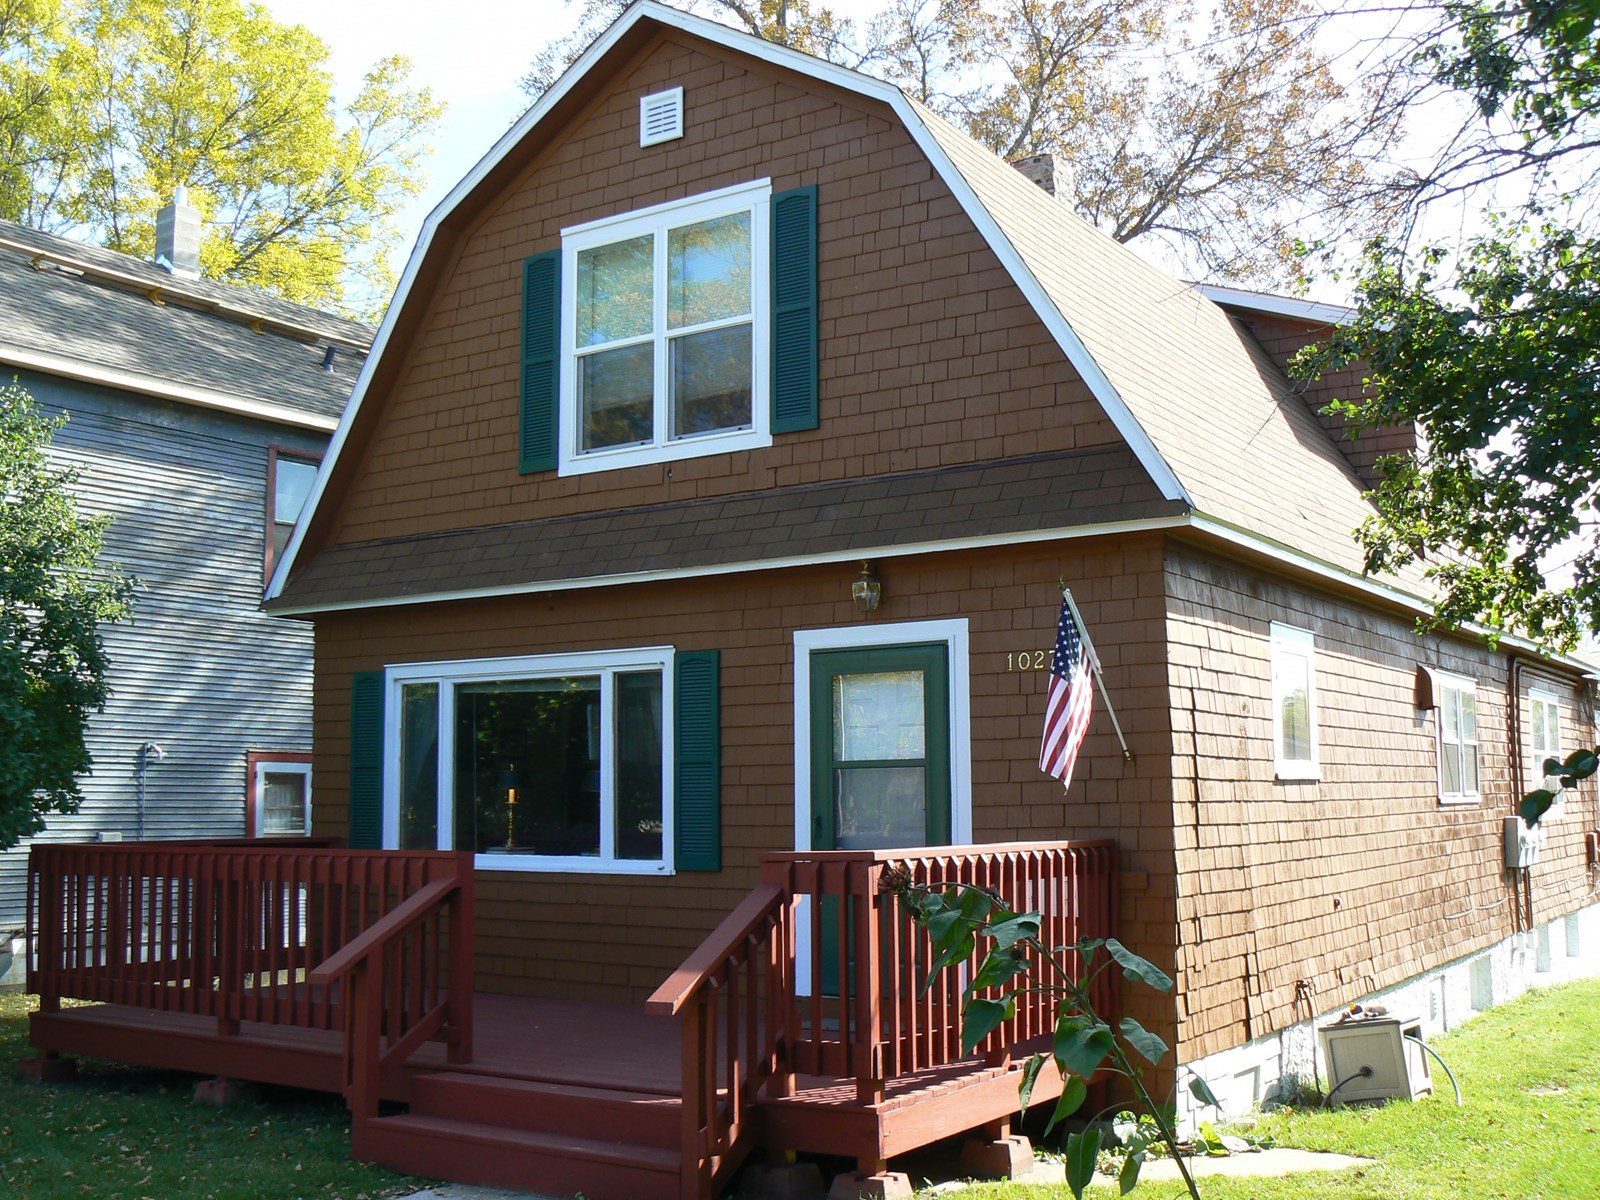 Home for sale in International Falls, MN